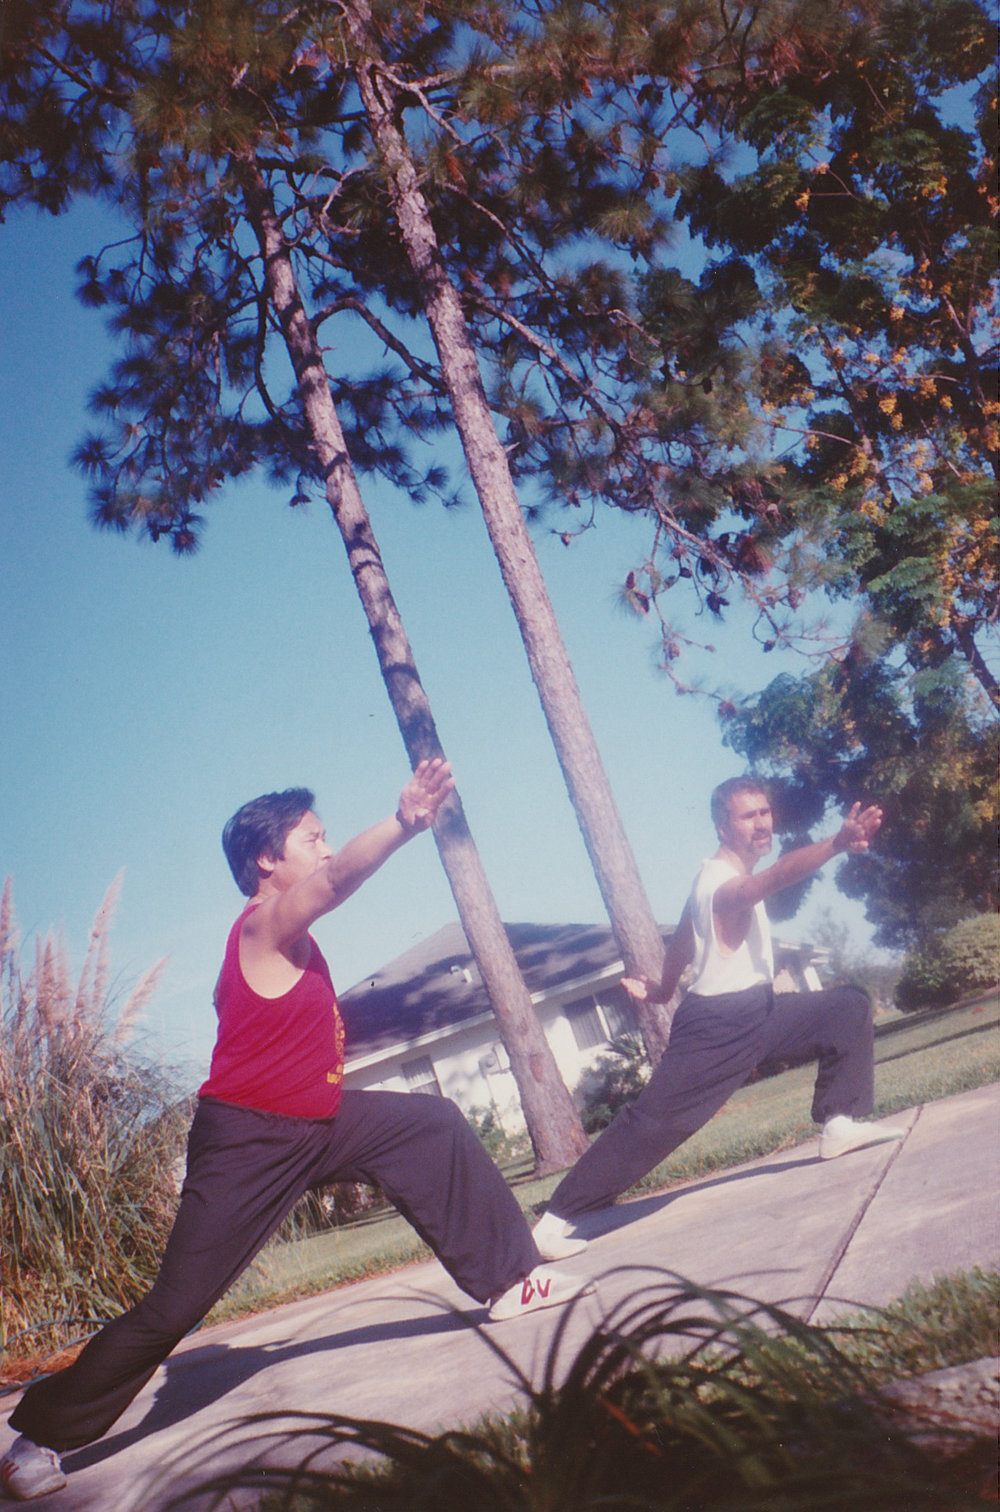 Master Paolillo learning Chen Style Pao Choi form from Master Le En Jiu in Orlando, FL 1990.